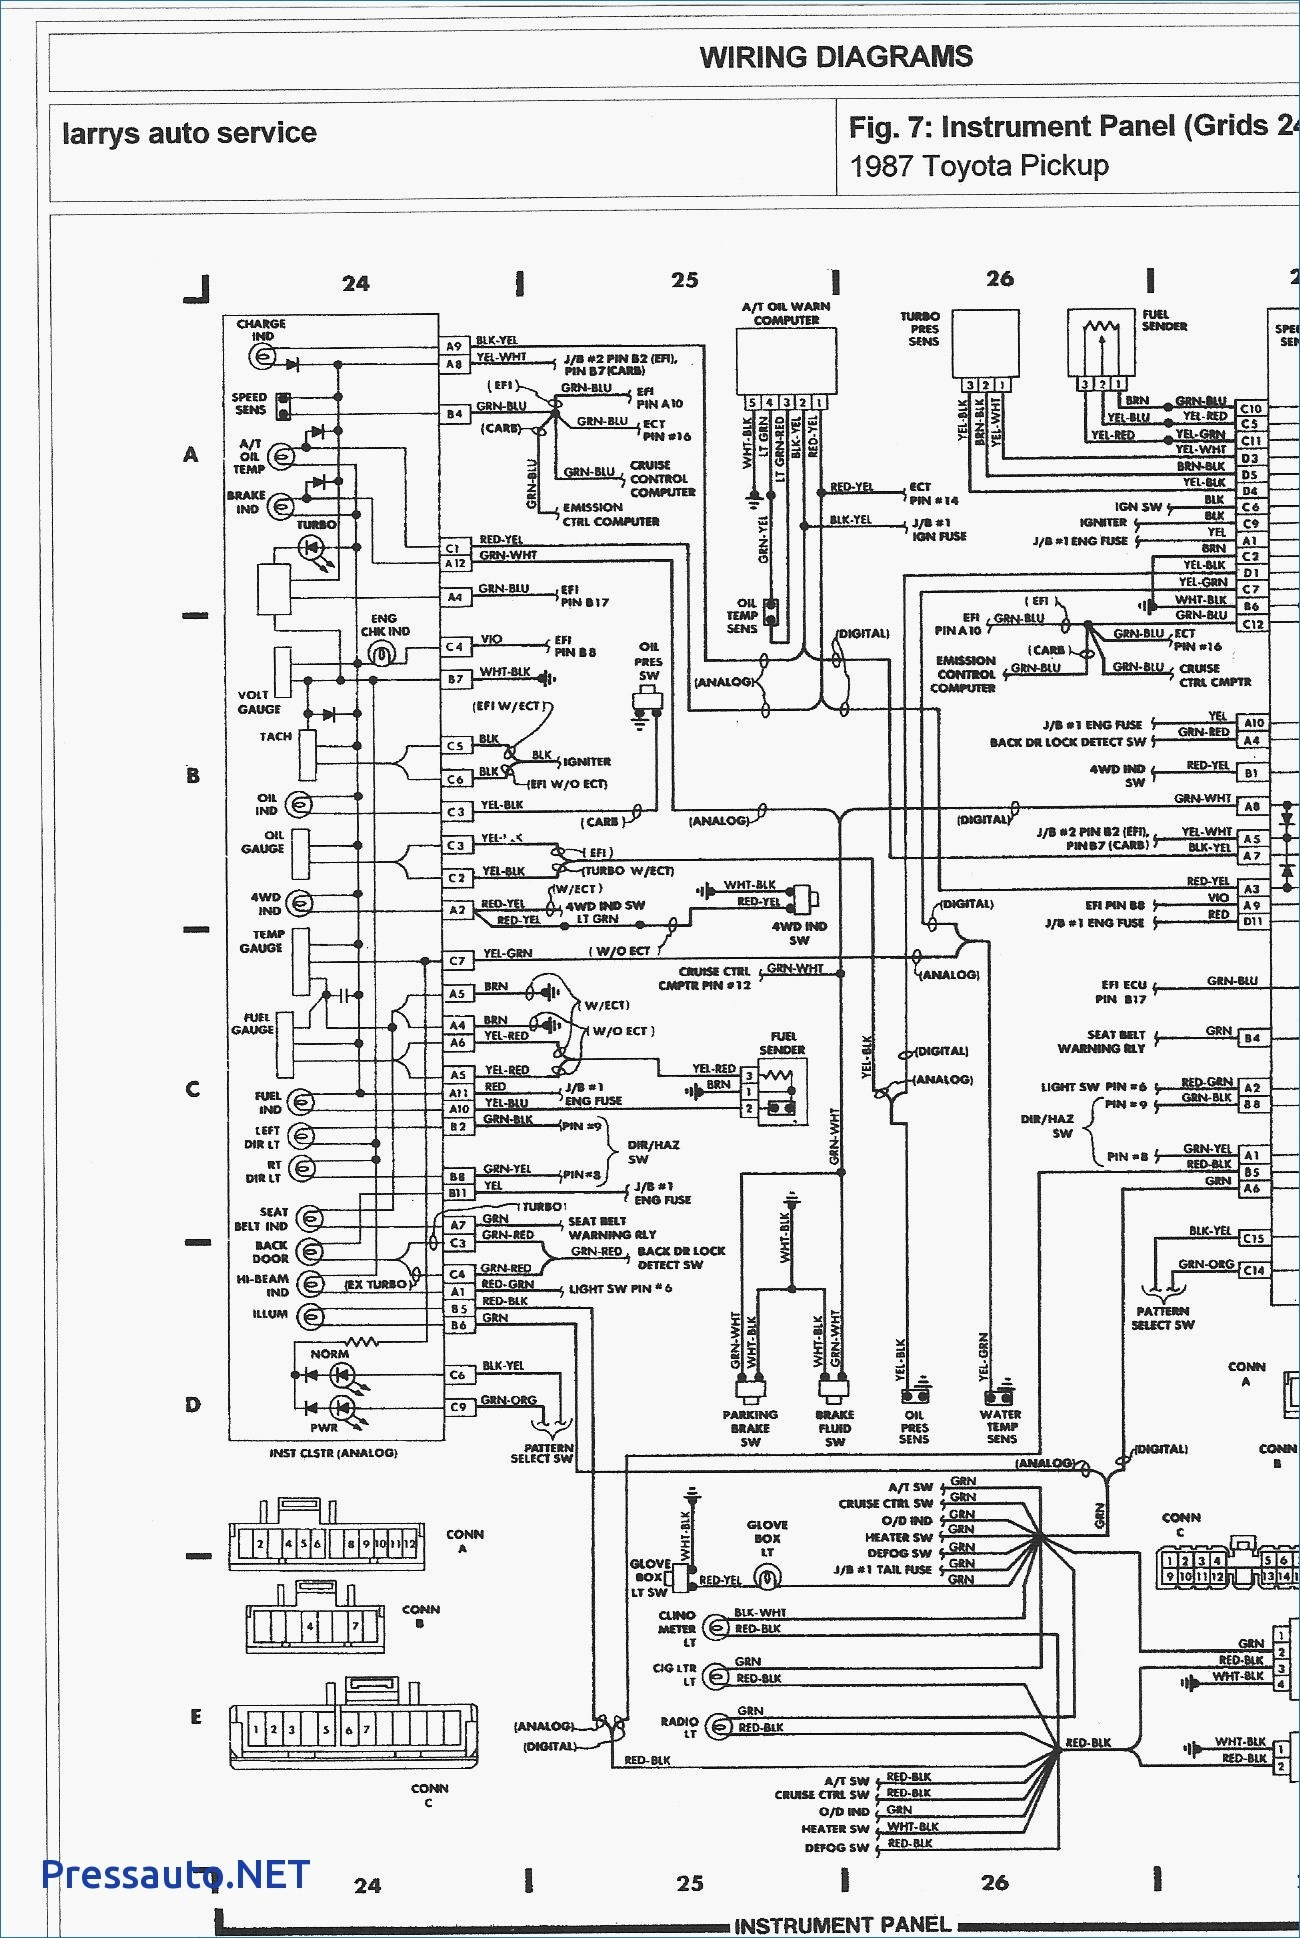 1983 toyota Pickup Wiring Diagram Amazing 1986 toyota Pickup Wiring Diagram Everything You Of 1983 toyota Pickup Wiring Diagram